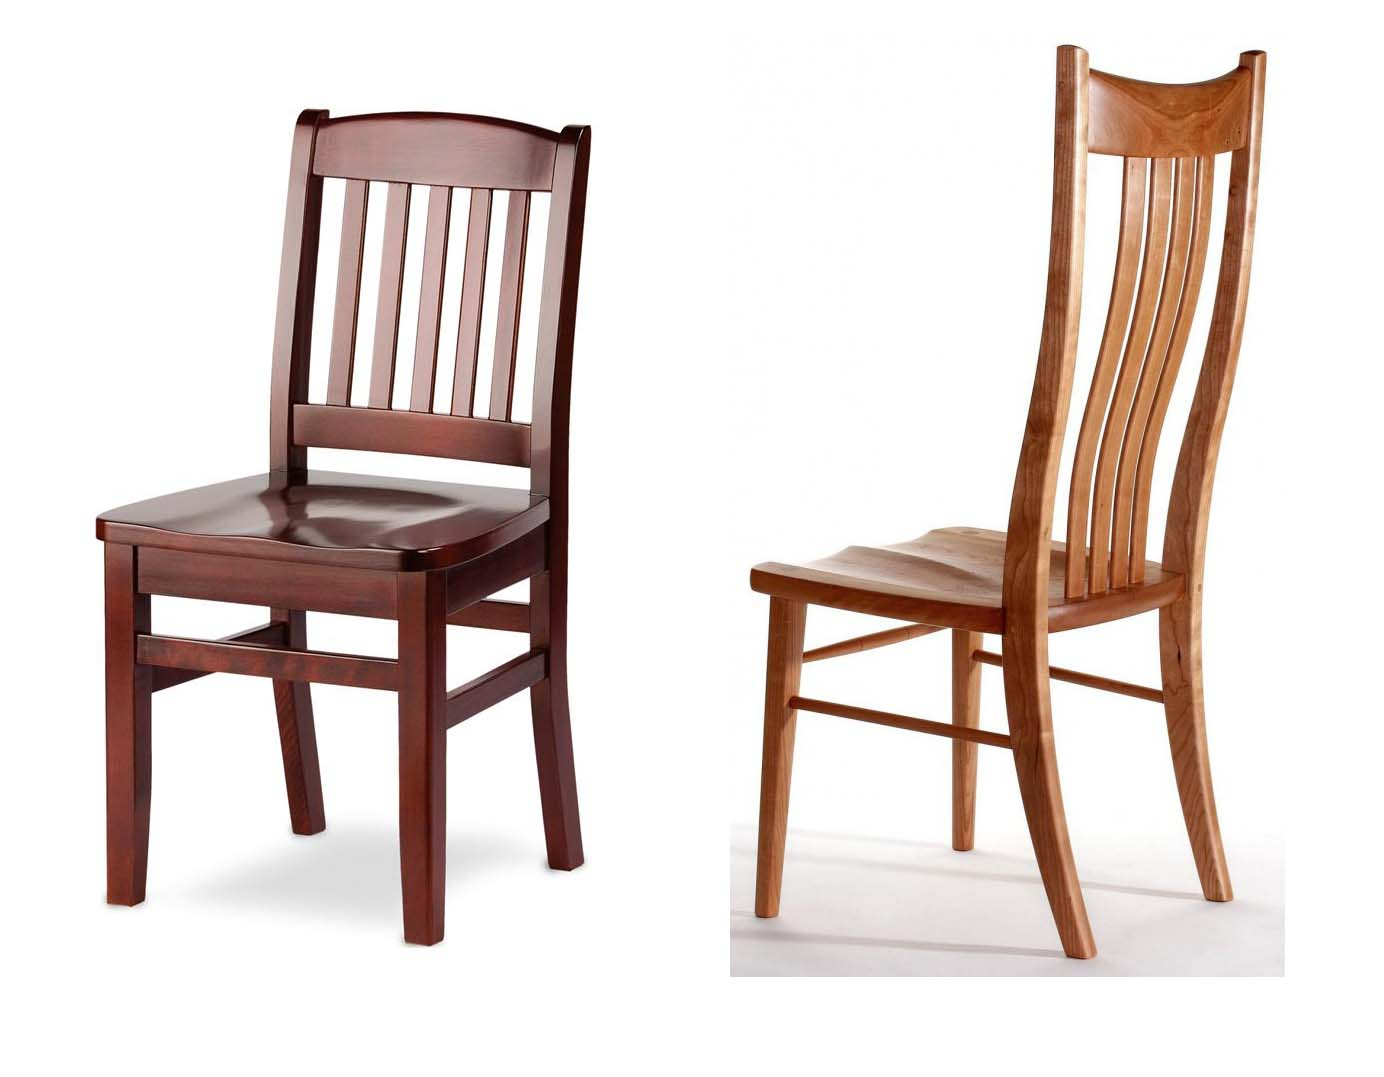 Wooden Arm Chair Designs ~ Why using wood dining chairs in your room home